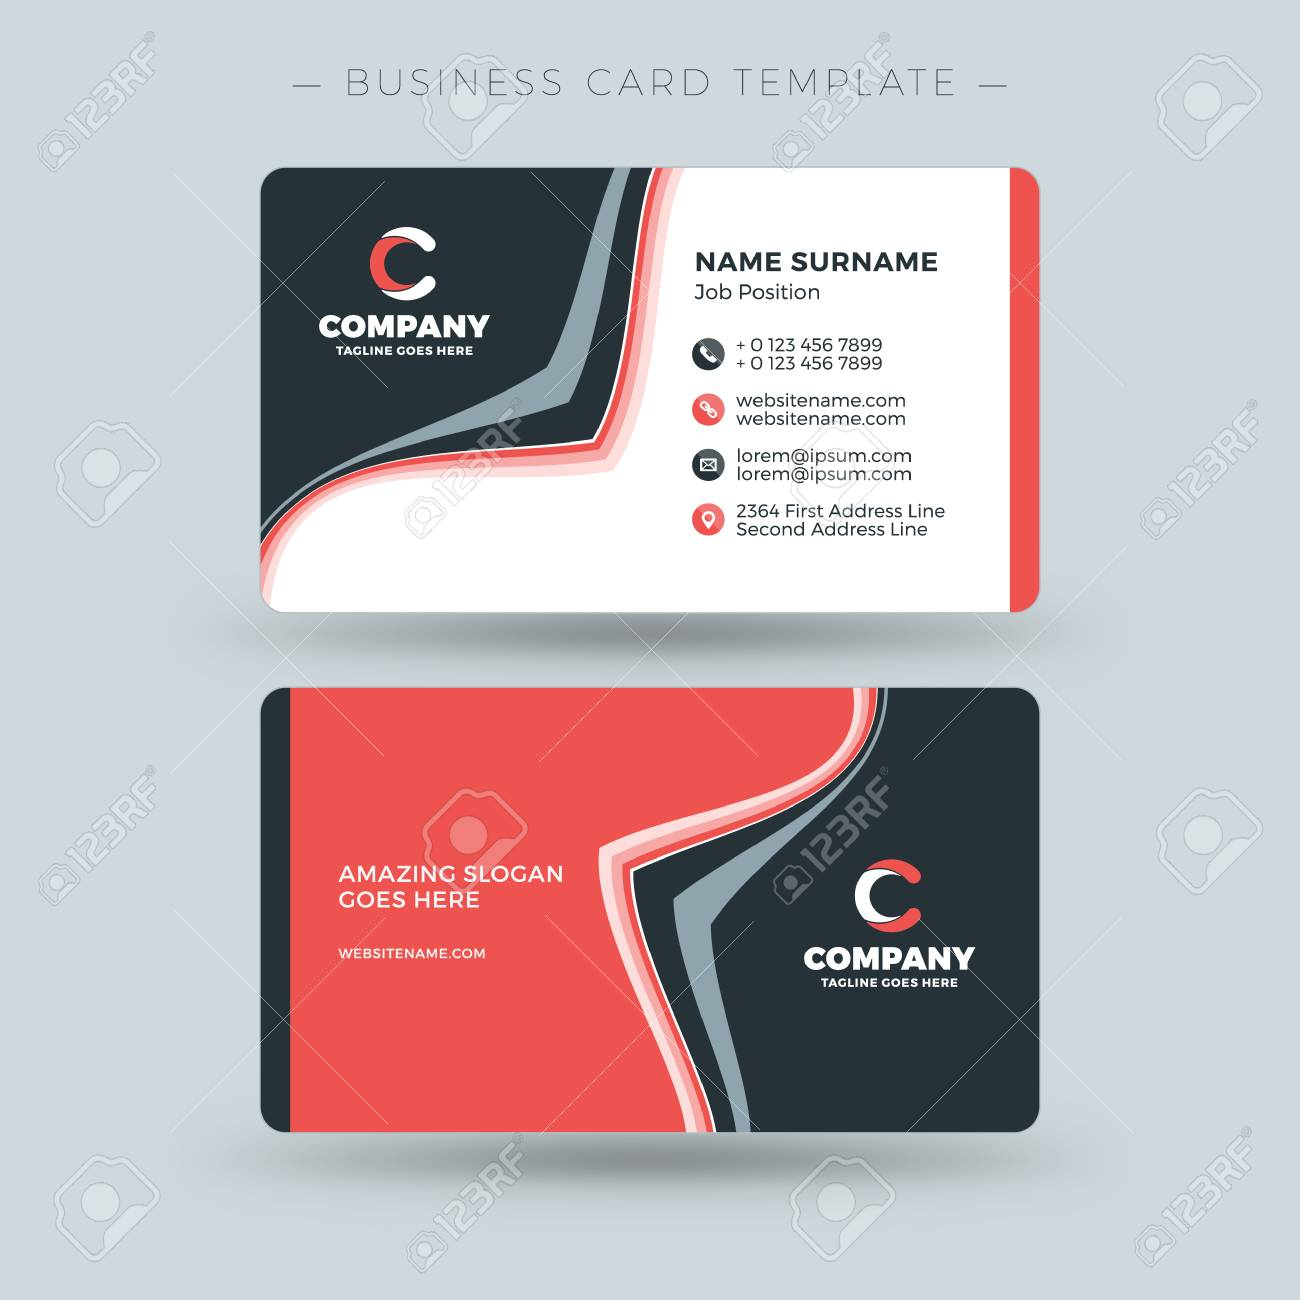 Double sided business card template with abstract red and black double sided business card template with abstract red and black waves background vector illustration flashek Gallery